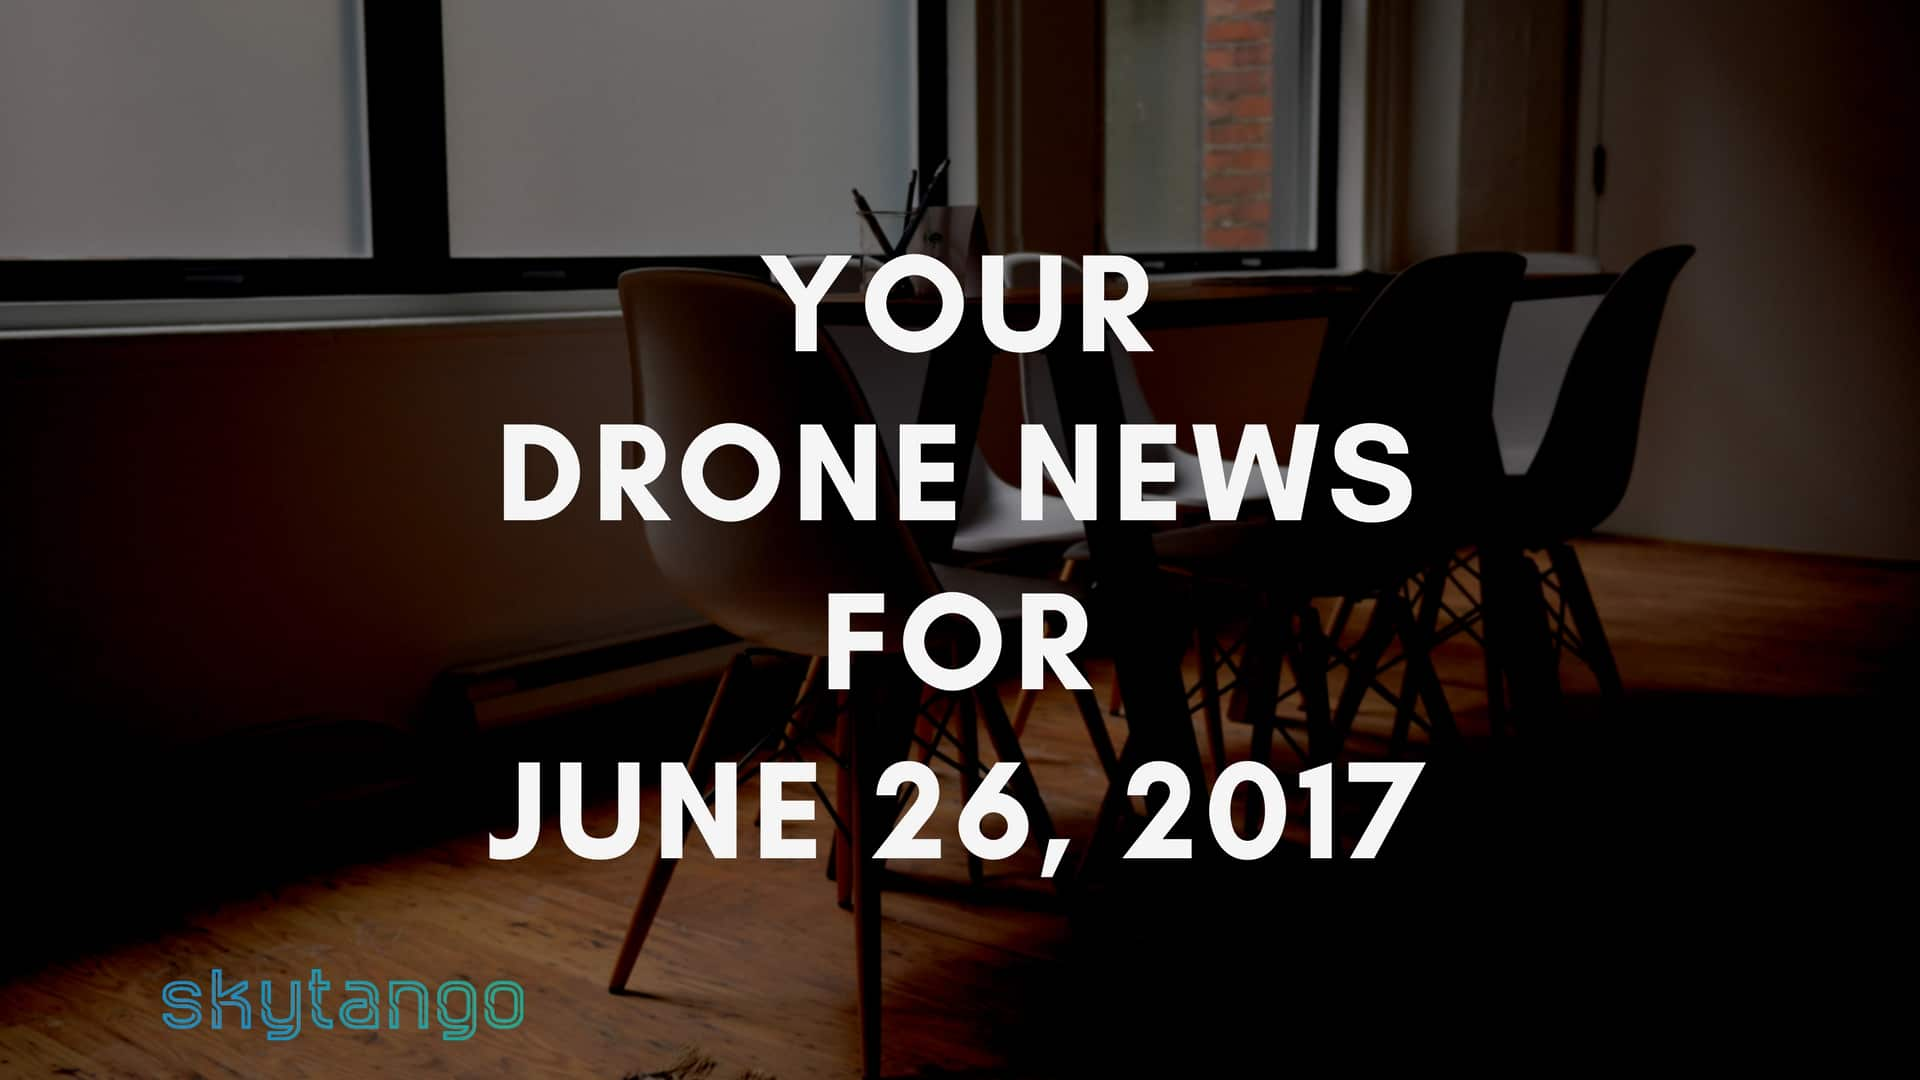 Your drone news for 26 june 2017 us regulations eu blueprint your drone news for 26 june 2017 us regulations eu blueprint olympics climate change agriculture malvernweather Image collections